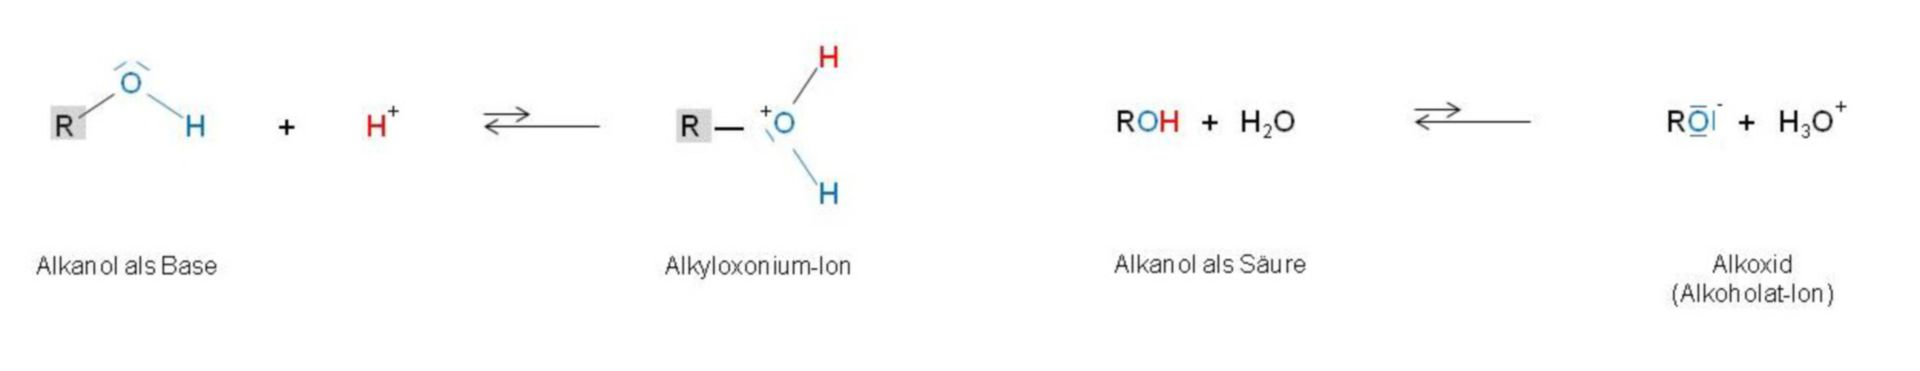 Alkoxide (alcoholate ion)